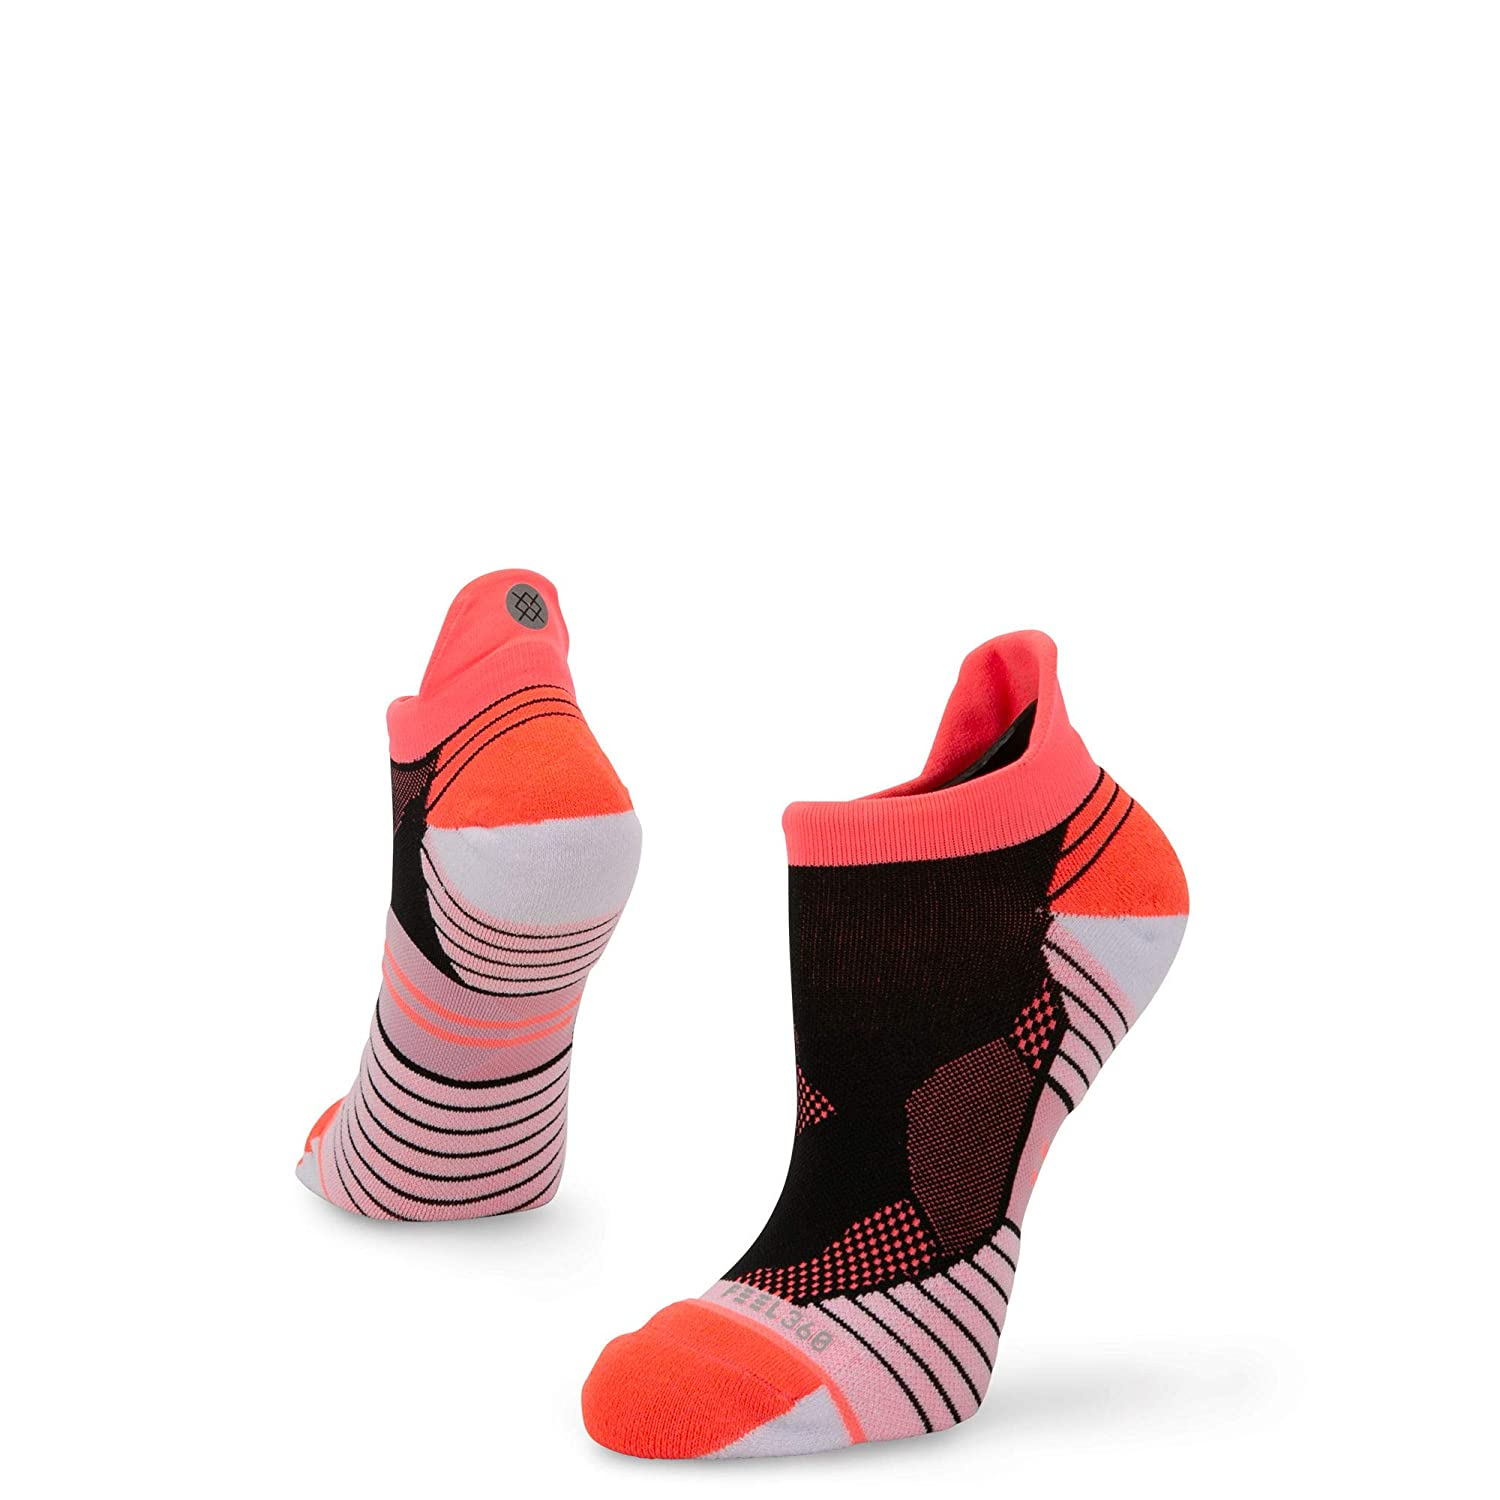 1a494247b8e91 Stance Womens Run Tab Socks at Amazon Women's Clothing store: